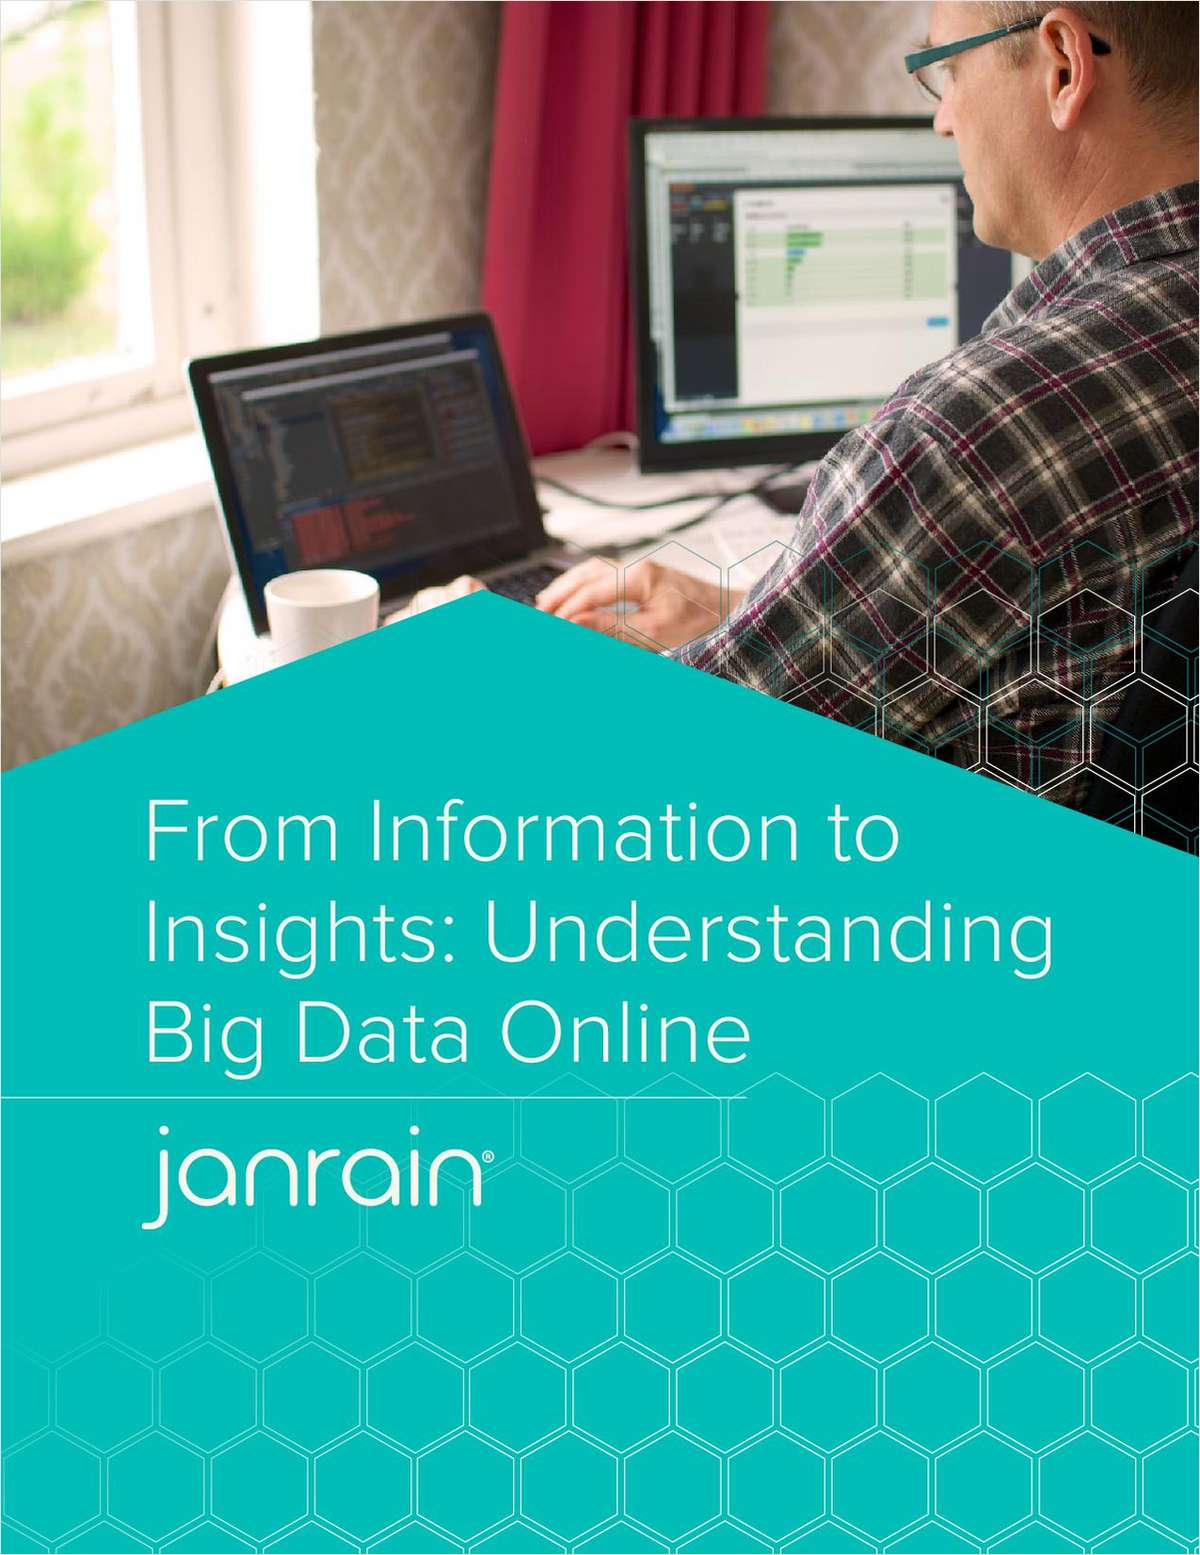 From Information to Insights: Understanding Big Data Online